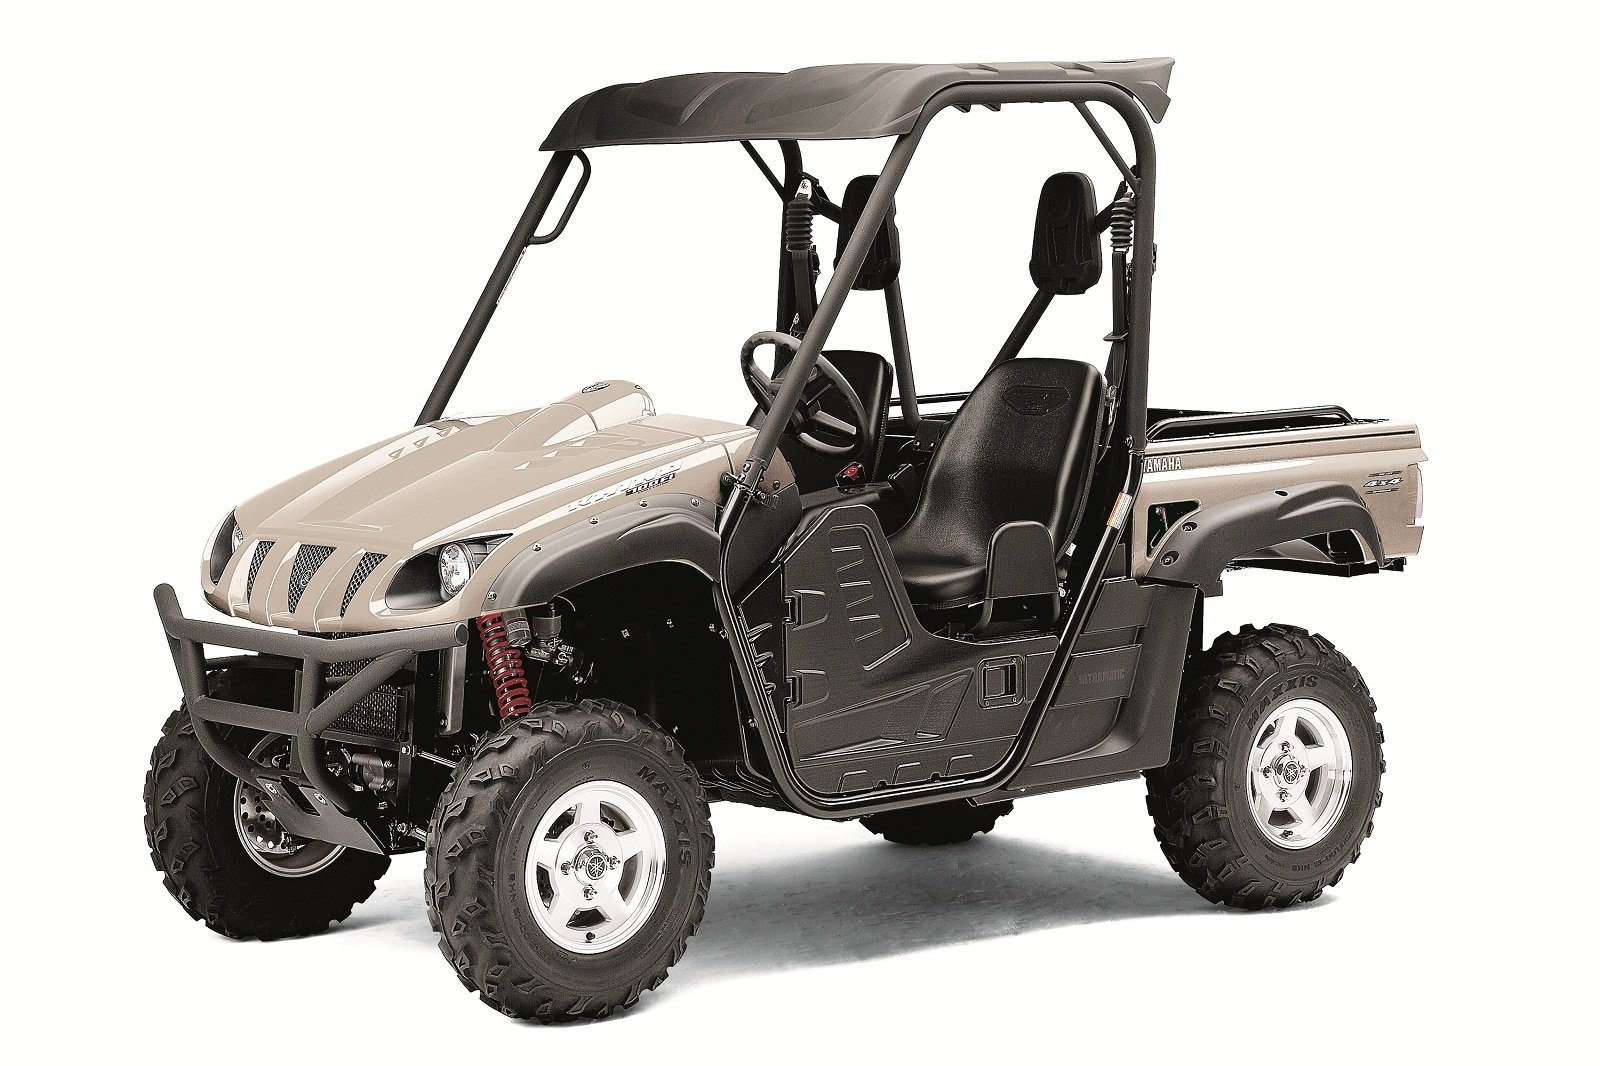 2012 Yamaha Rhino 700 Fi Auto 4x4 Sport Edition Review